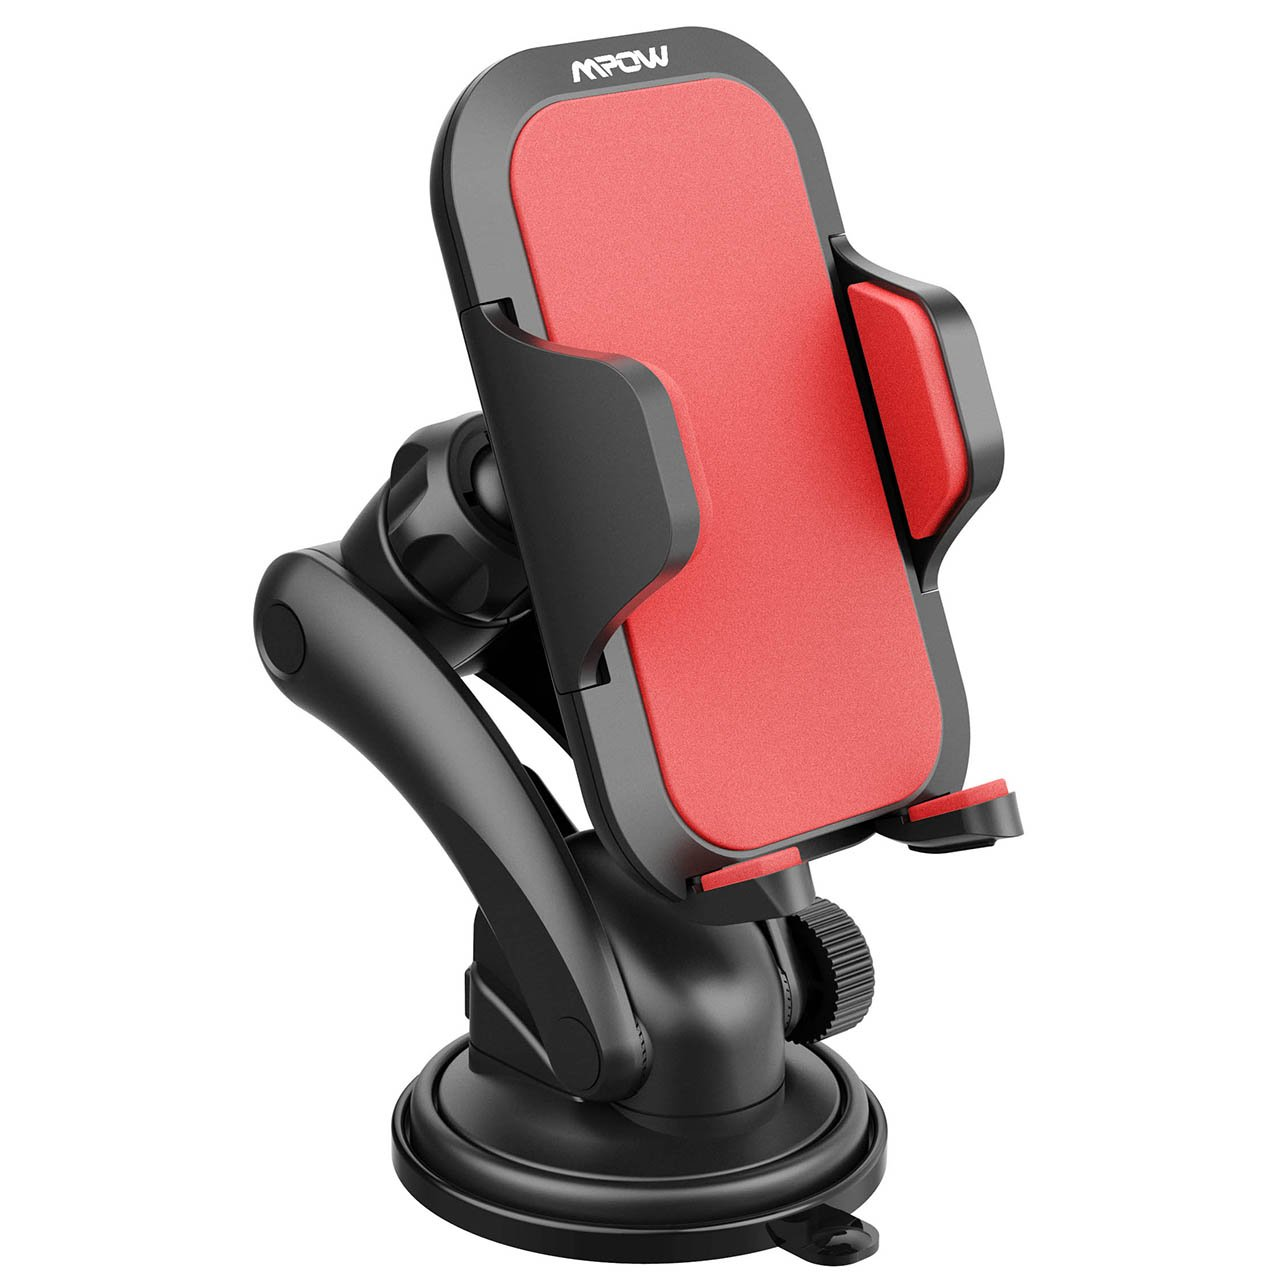 Mpow Car Phone Holder, Universal Dashboard Car Phone Mount Holder/w One-Touch Design&Washable Strong Sticky Gel Pad for iPhone X/8/8Plus7/7P/6s/6P, Galaxy S8/S7/S6, Google, LG, Huawei and Other Phone MCM12-USAS6PT